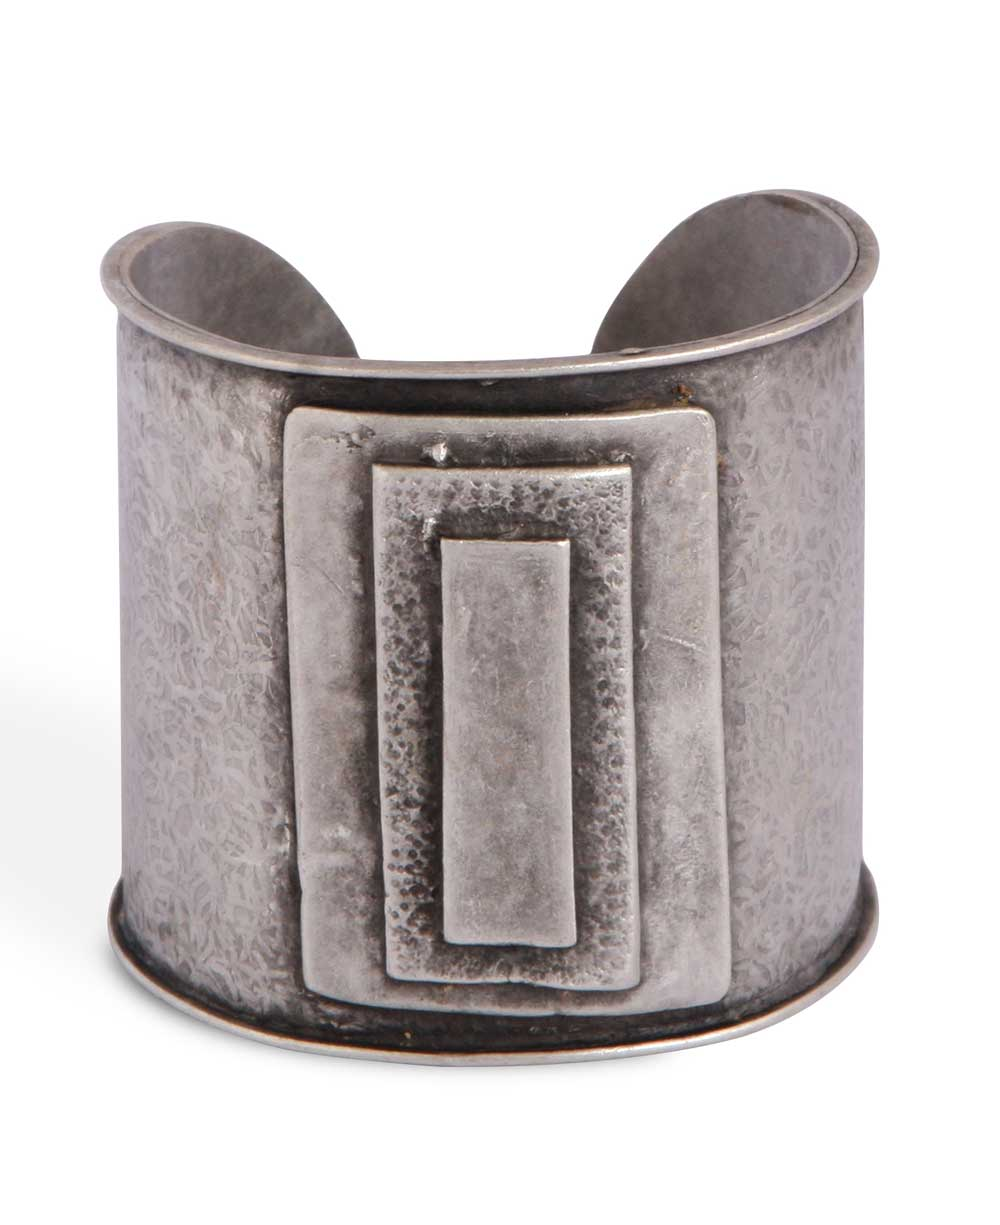 Modern Turkish Cuff Bracelet With Artistic Reliefs Cultural Elements